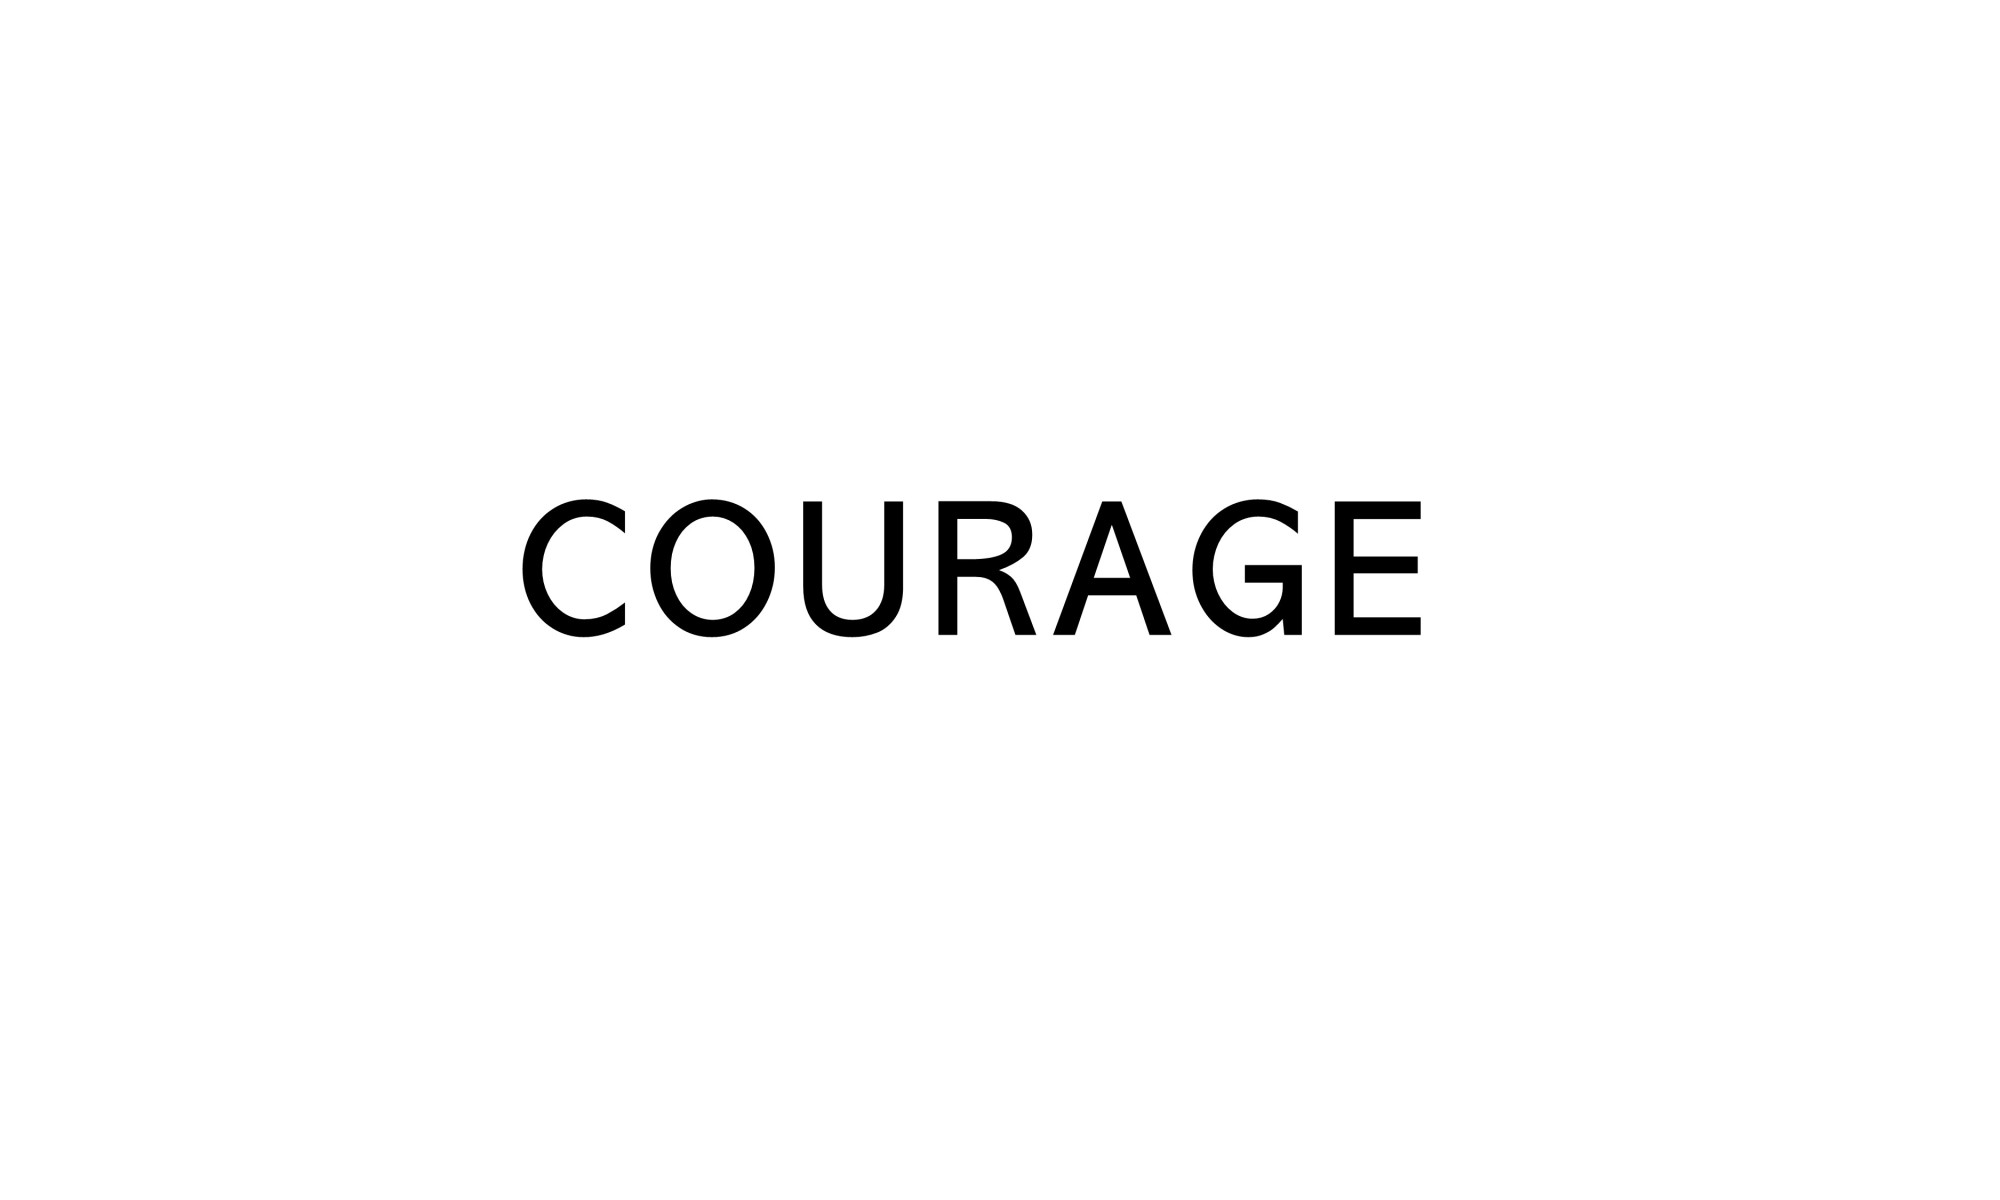 title text saying COURAGE